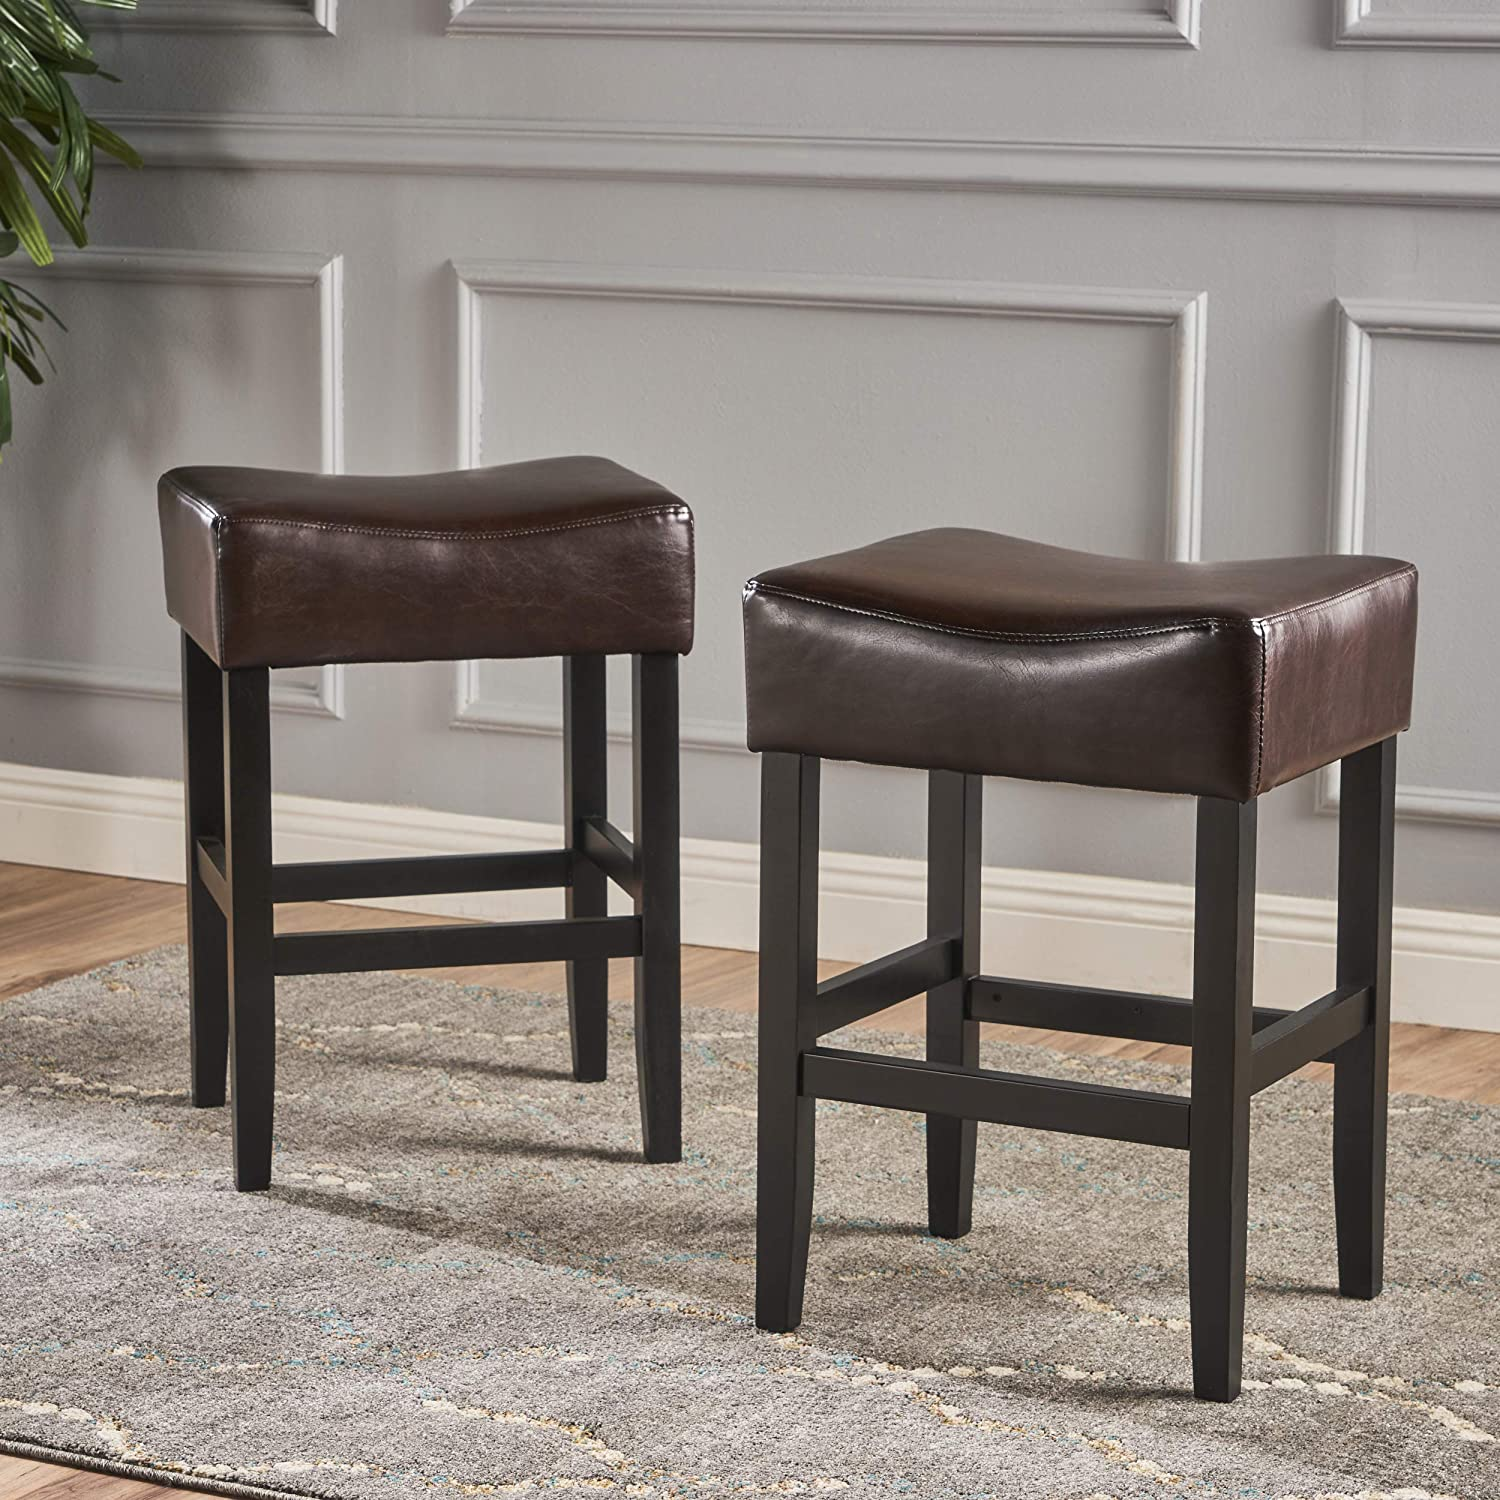 Christopher Knight Home 295961 Adler Set of 2 Brown Leather Backless Counter Stool